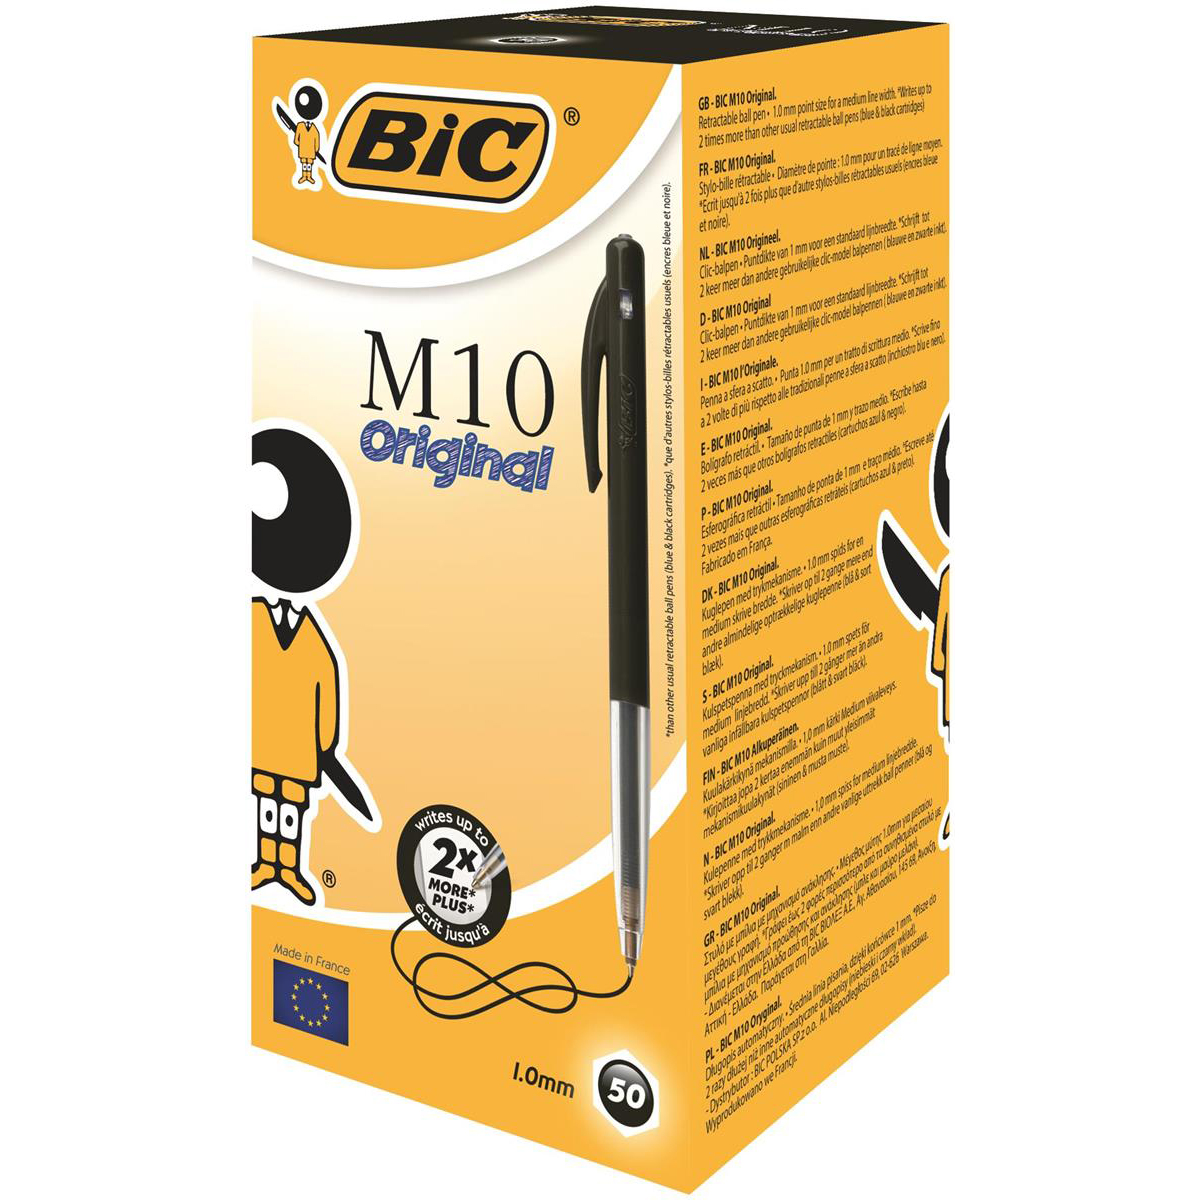 Bic M10 Clic Ball Pen Retractable 1.0mm Tip 0.32mm Line Black Ref 1199190125 Pack 50